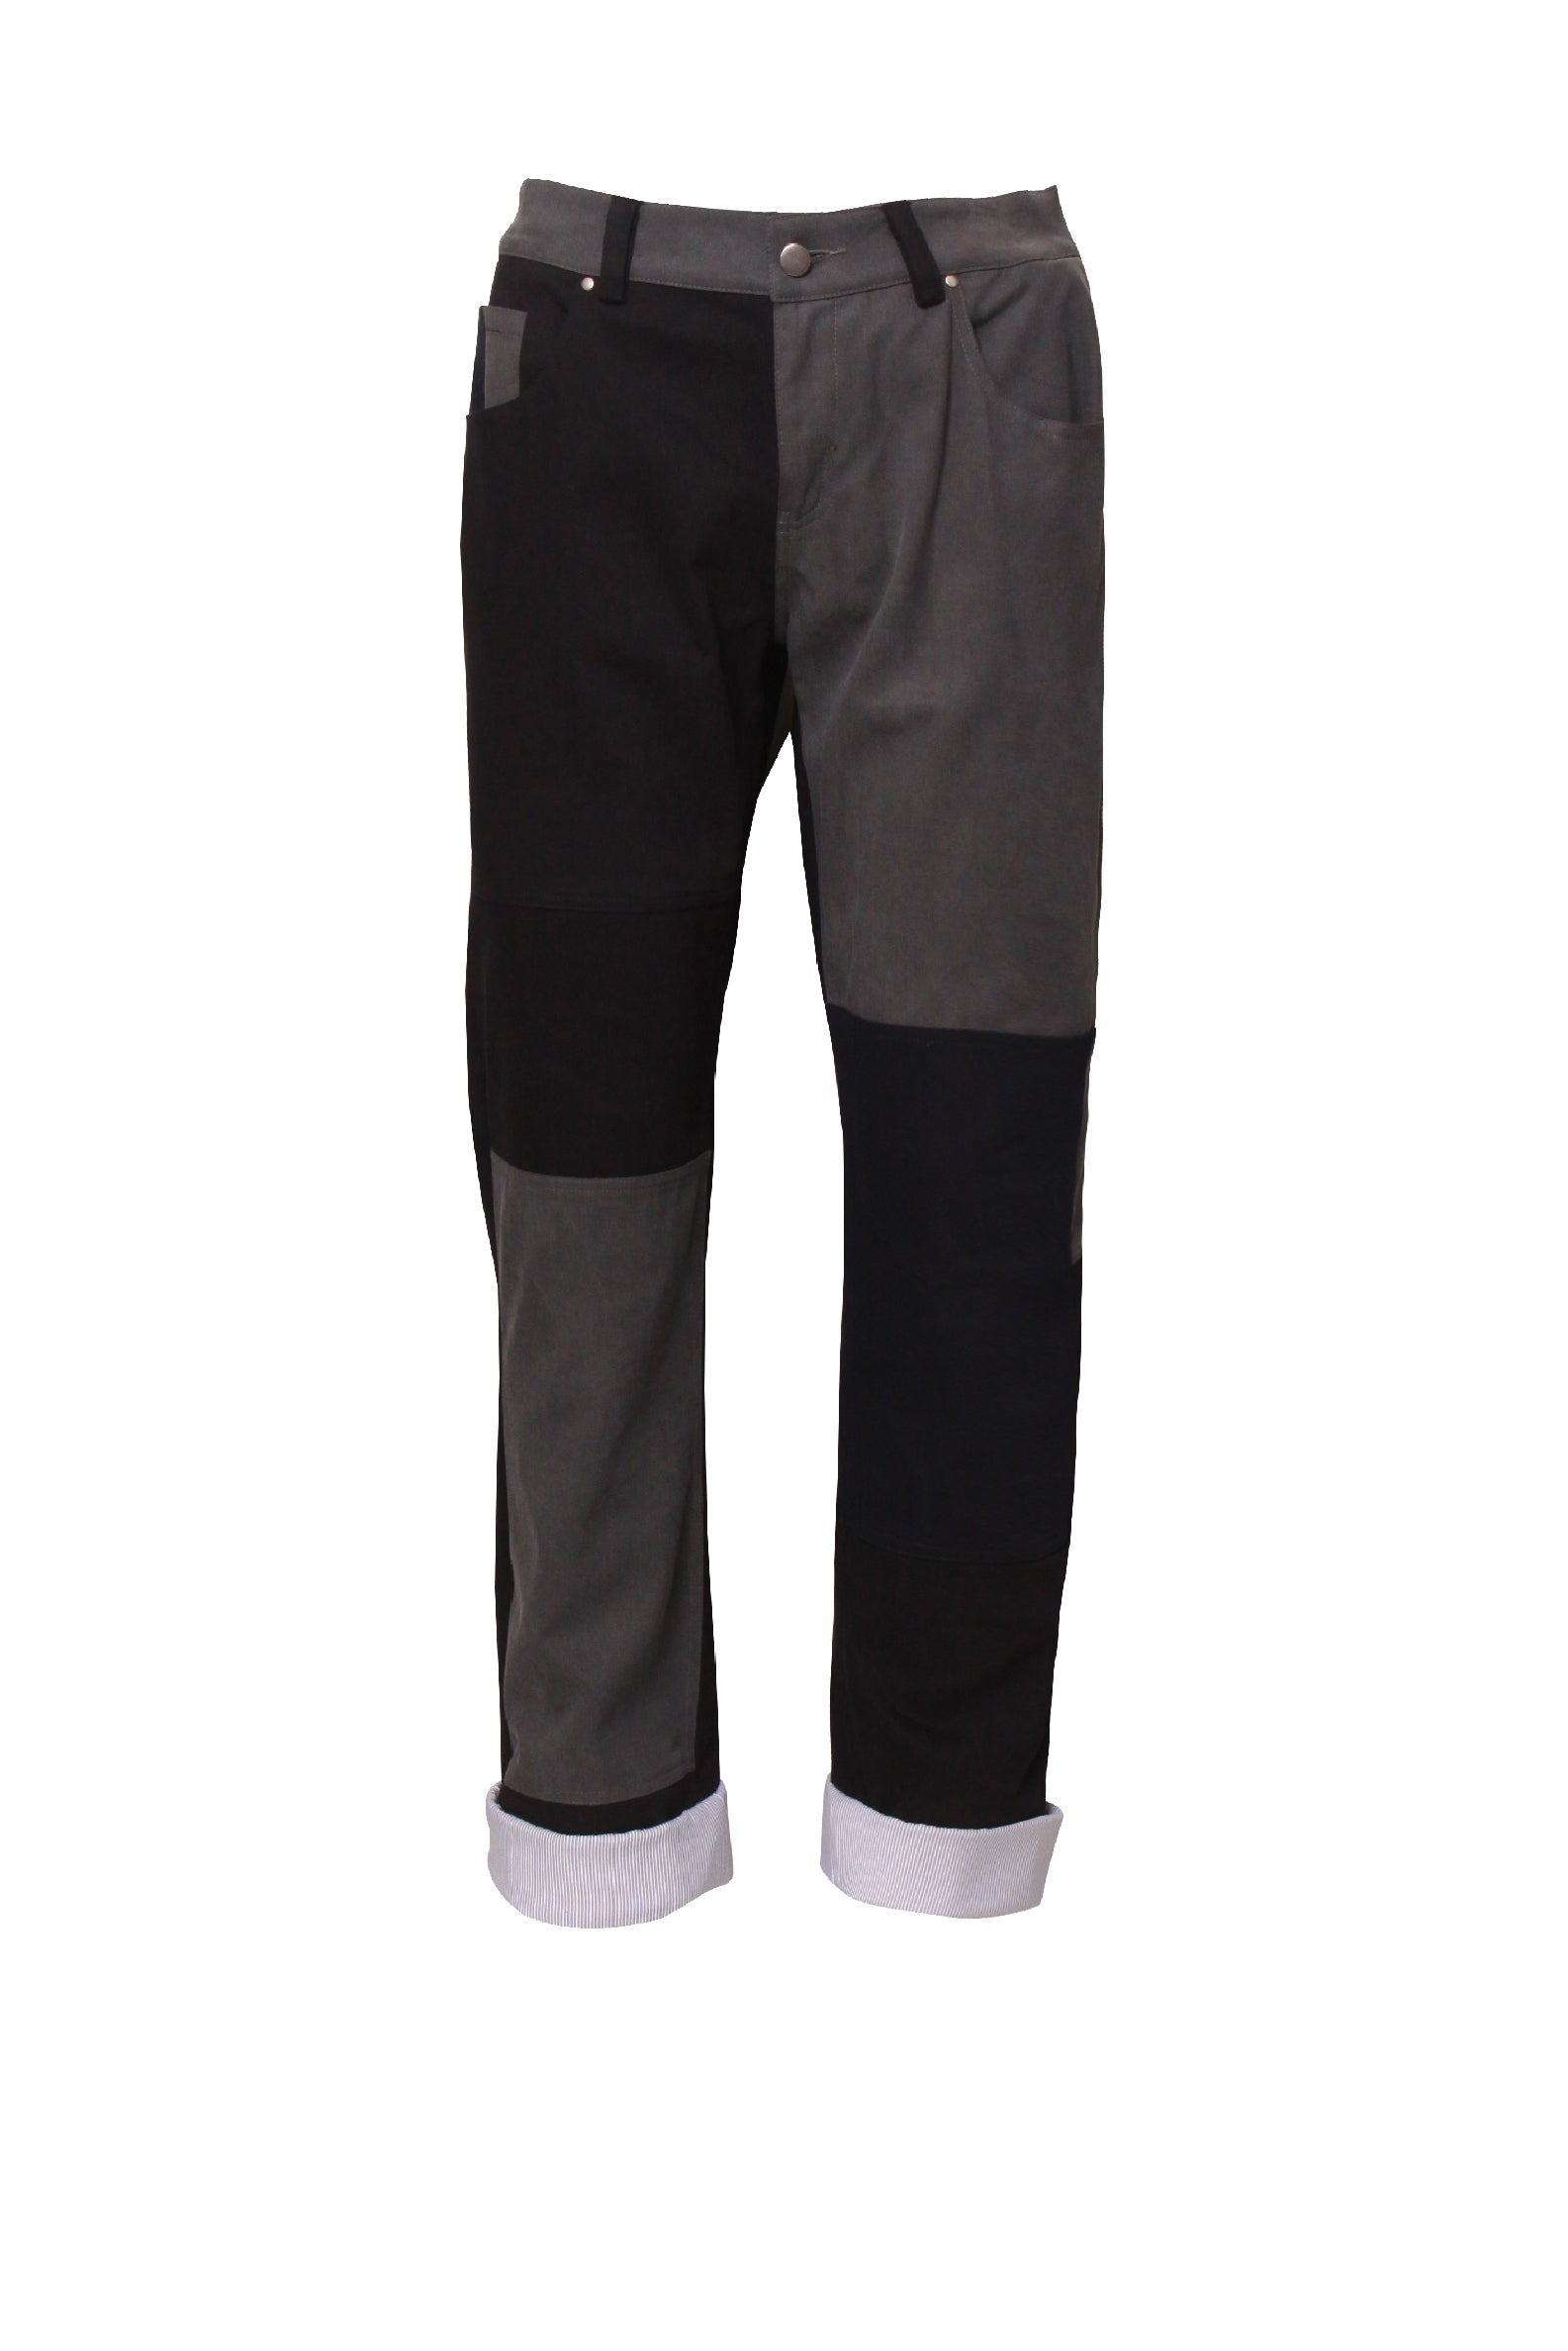 Patchwork Chino Pants